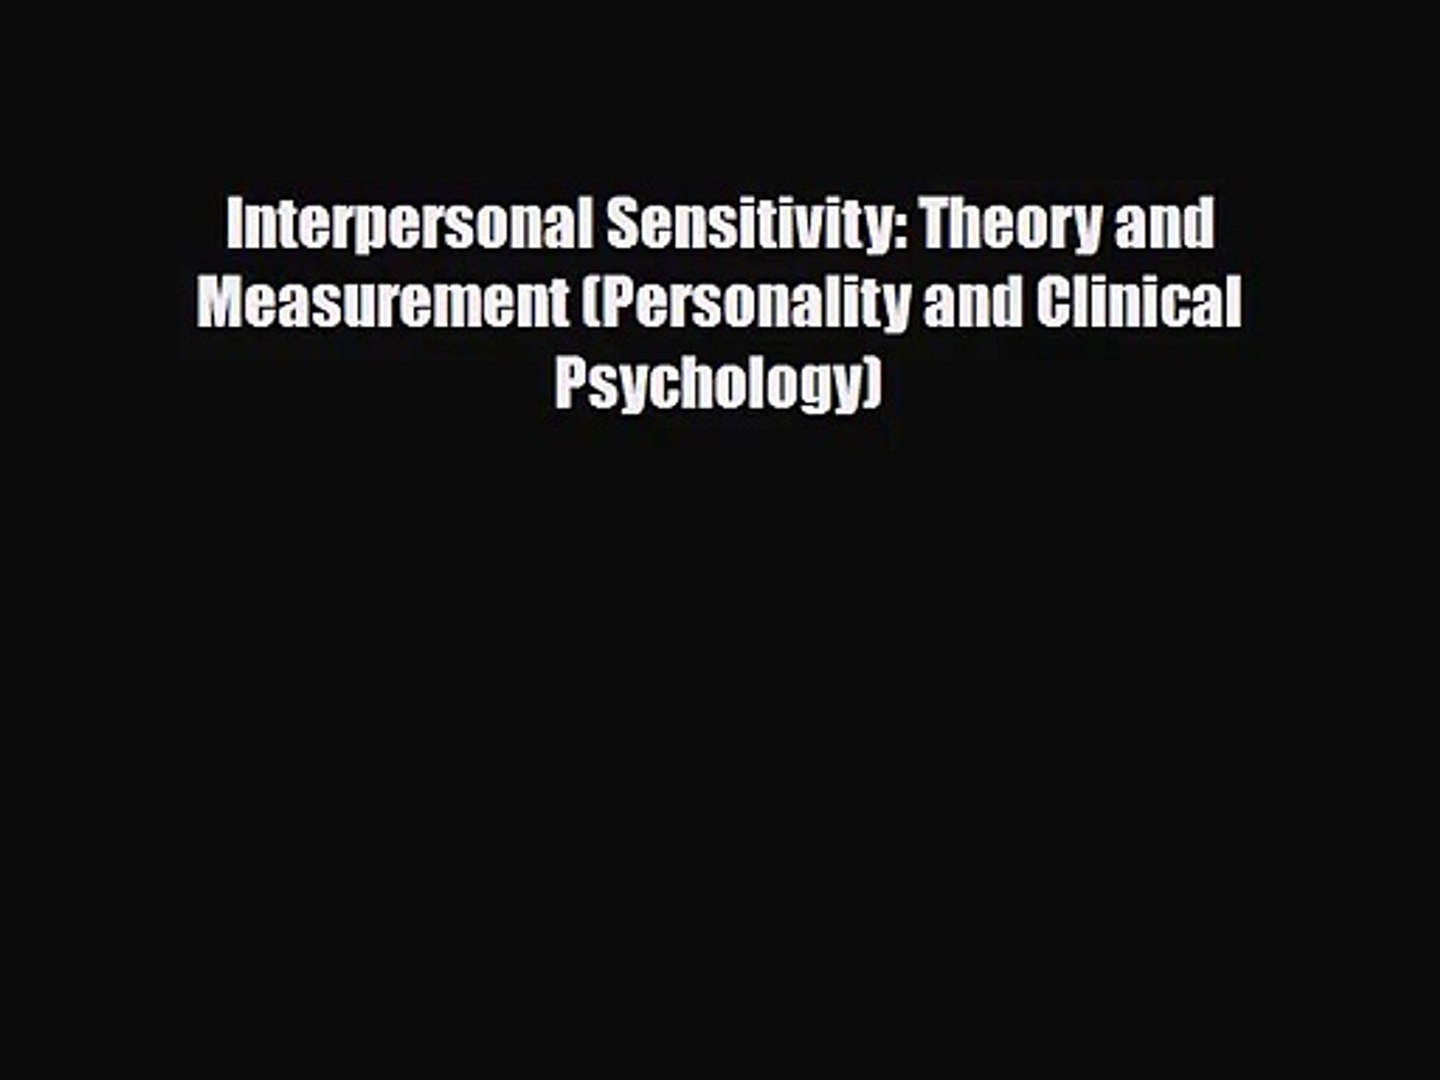 Interpersonal Sensitivity: Theory and Measurement